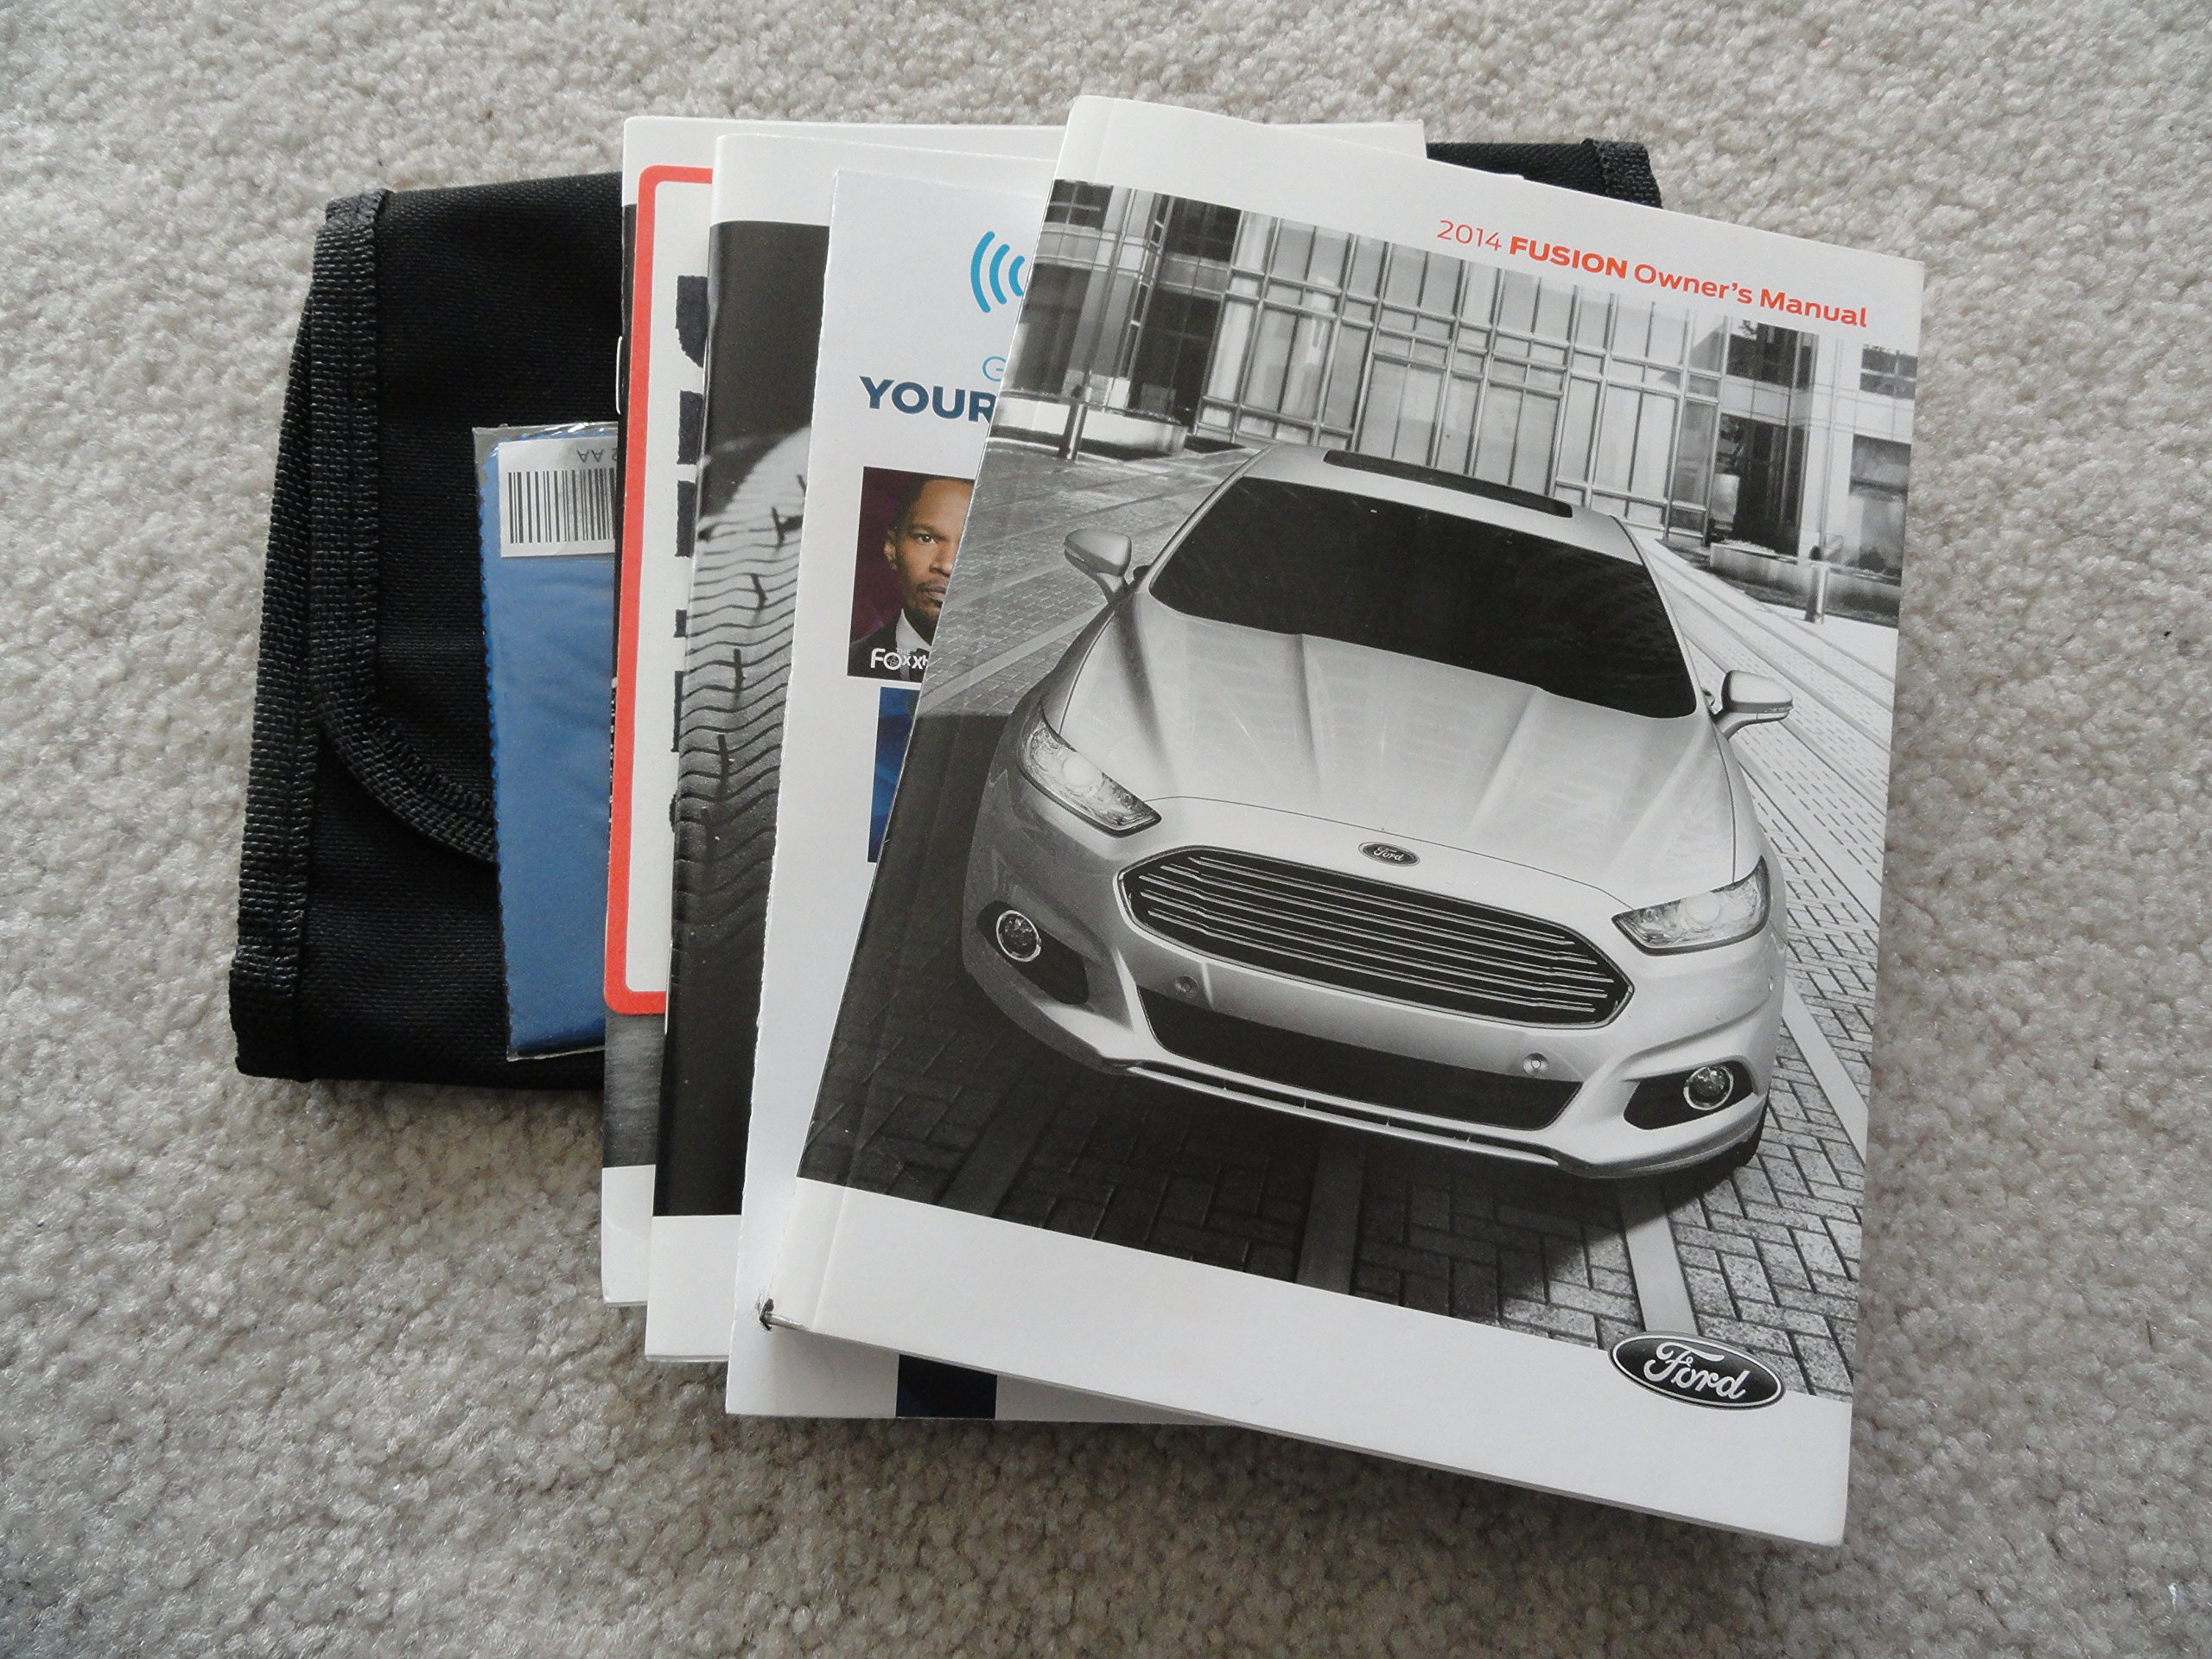 2014 Ford Fusion Owners Manual Ford Dealer Amazon Com Books